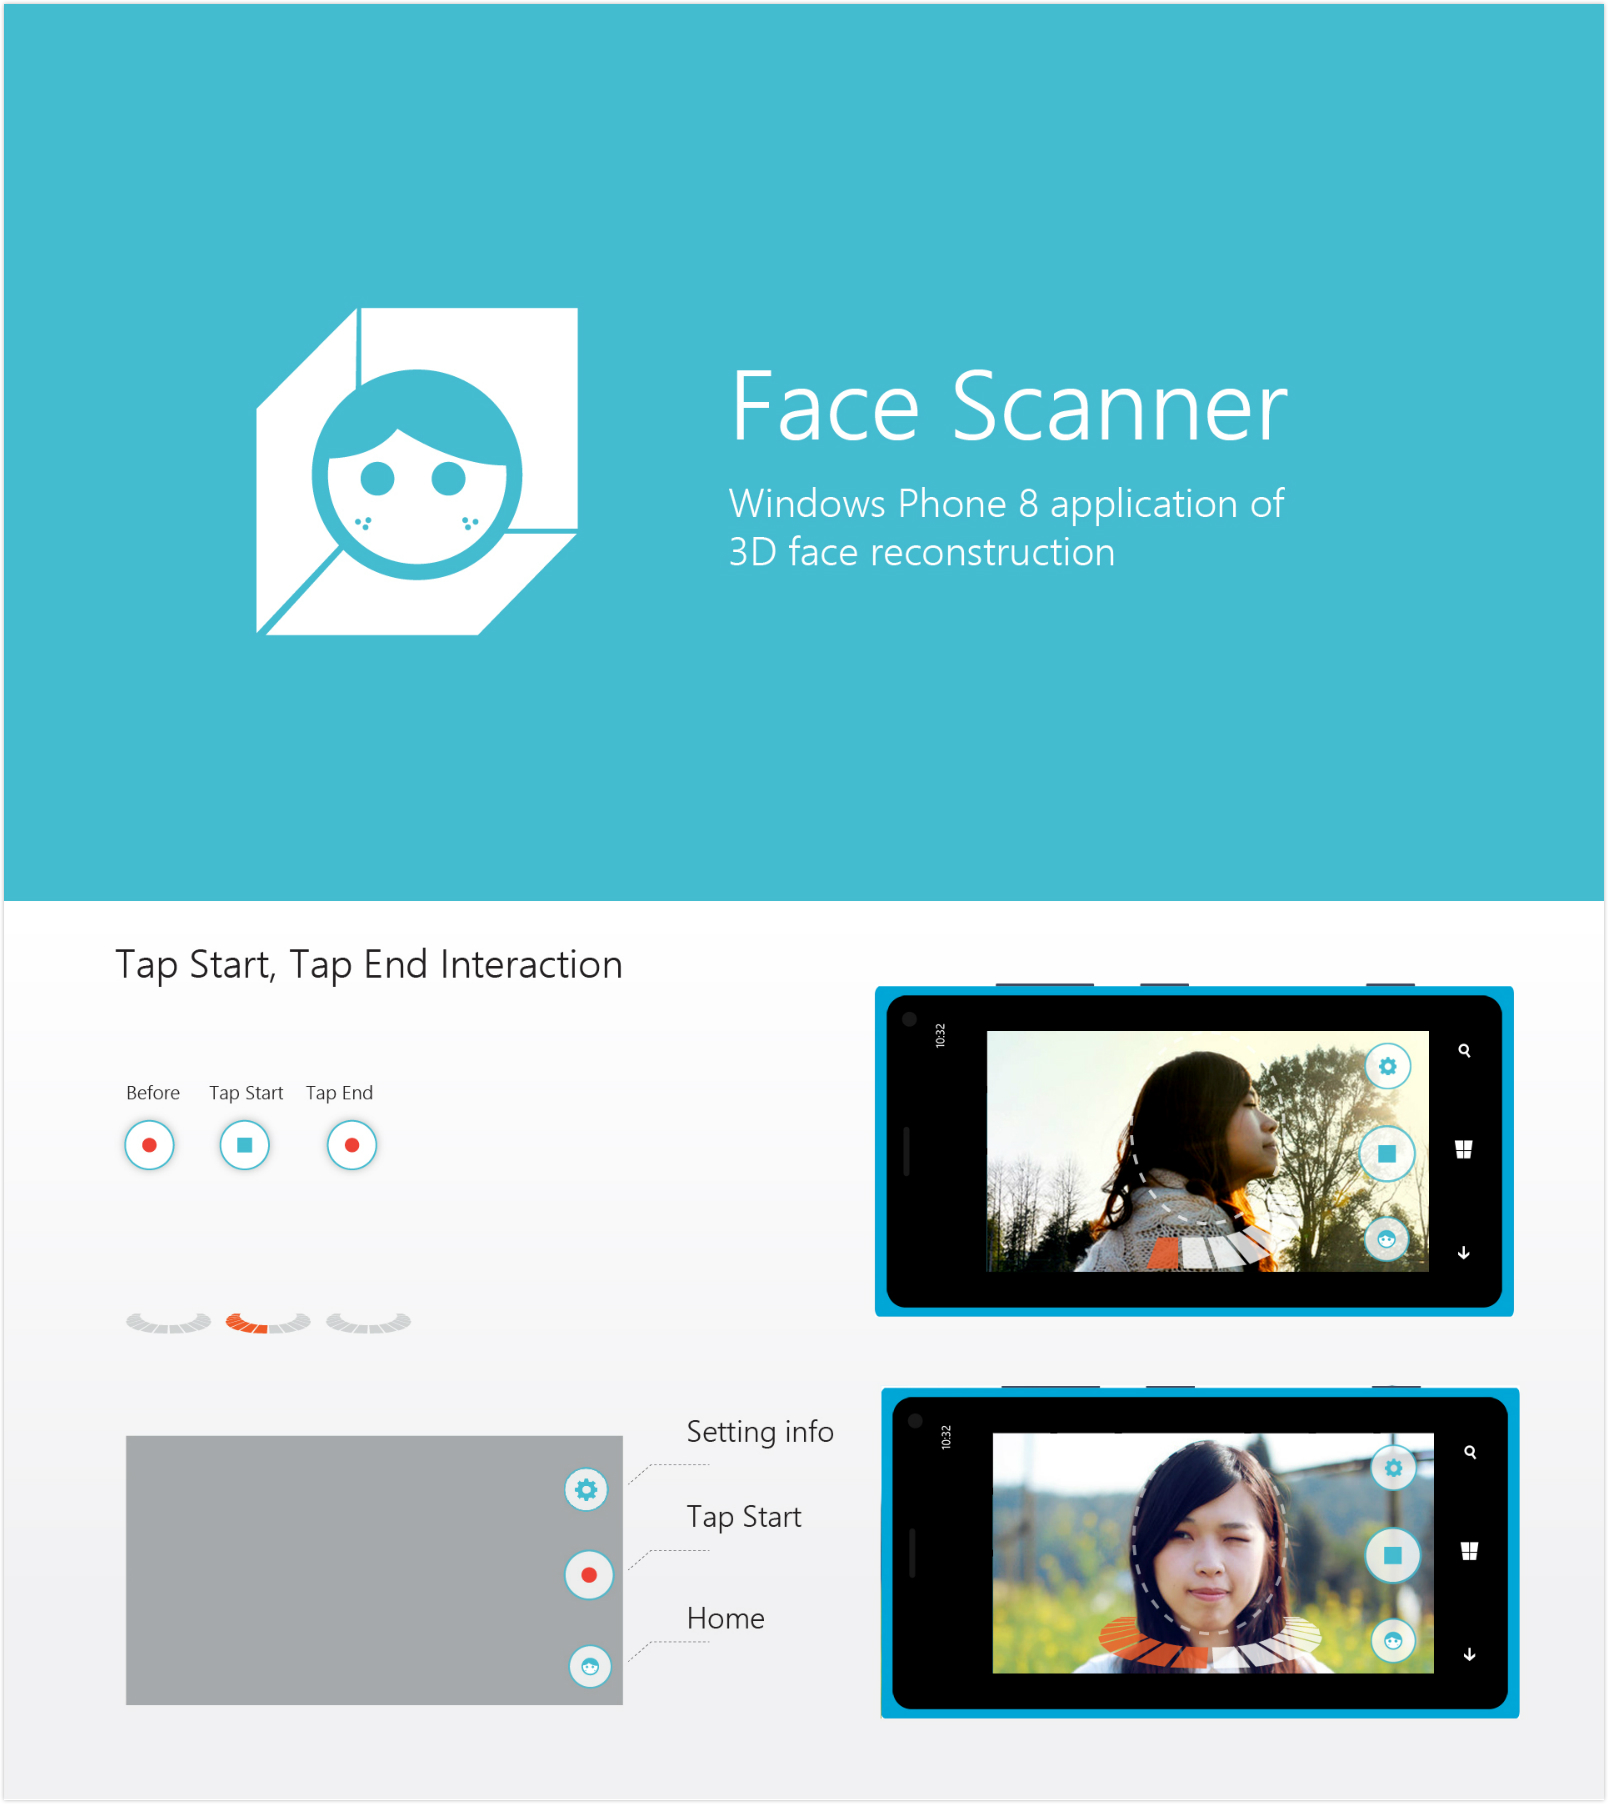 Windows Phone Devices with 3D Facial Scanning Are Possible